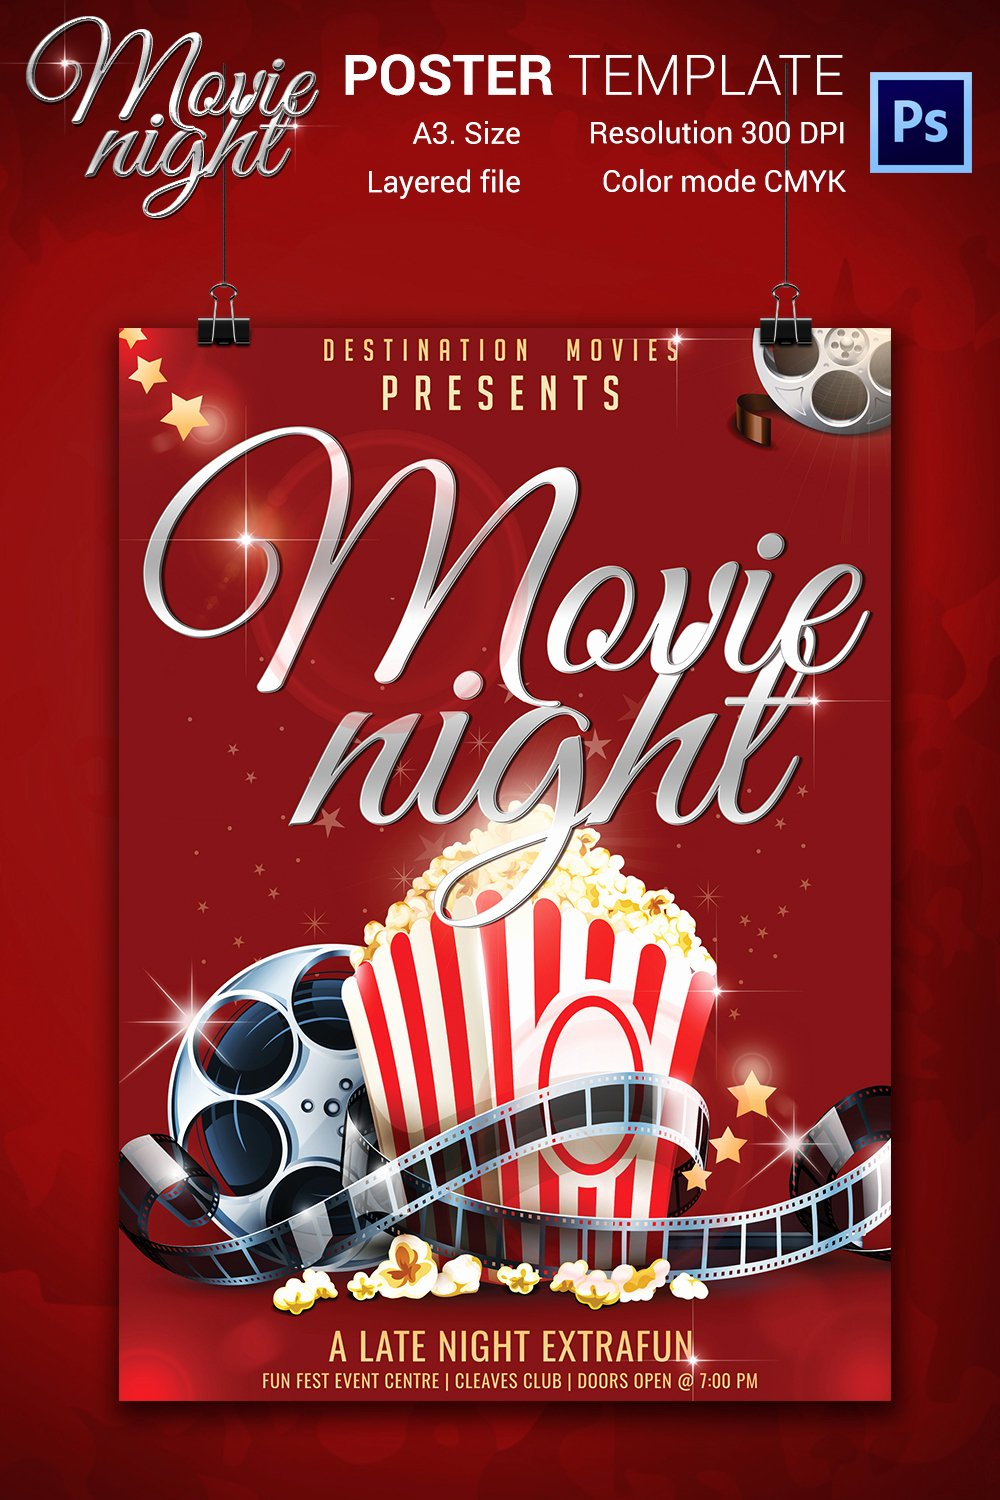 Movie Poster S Free Psd format Download event Flyer